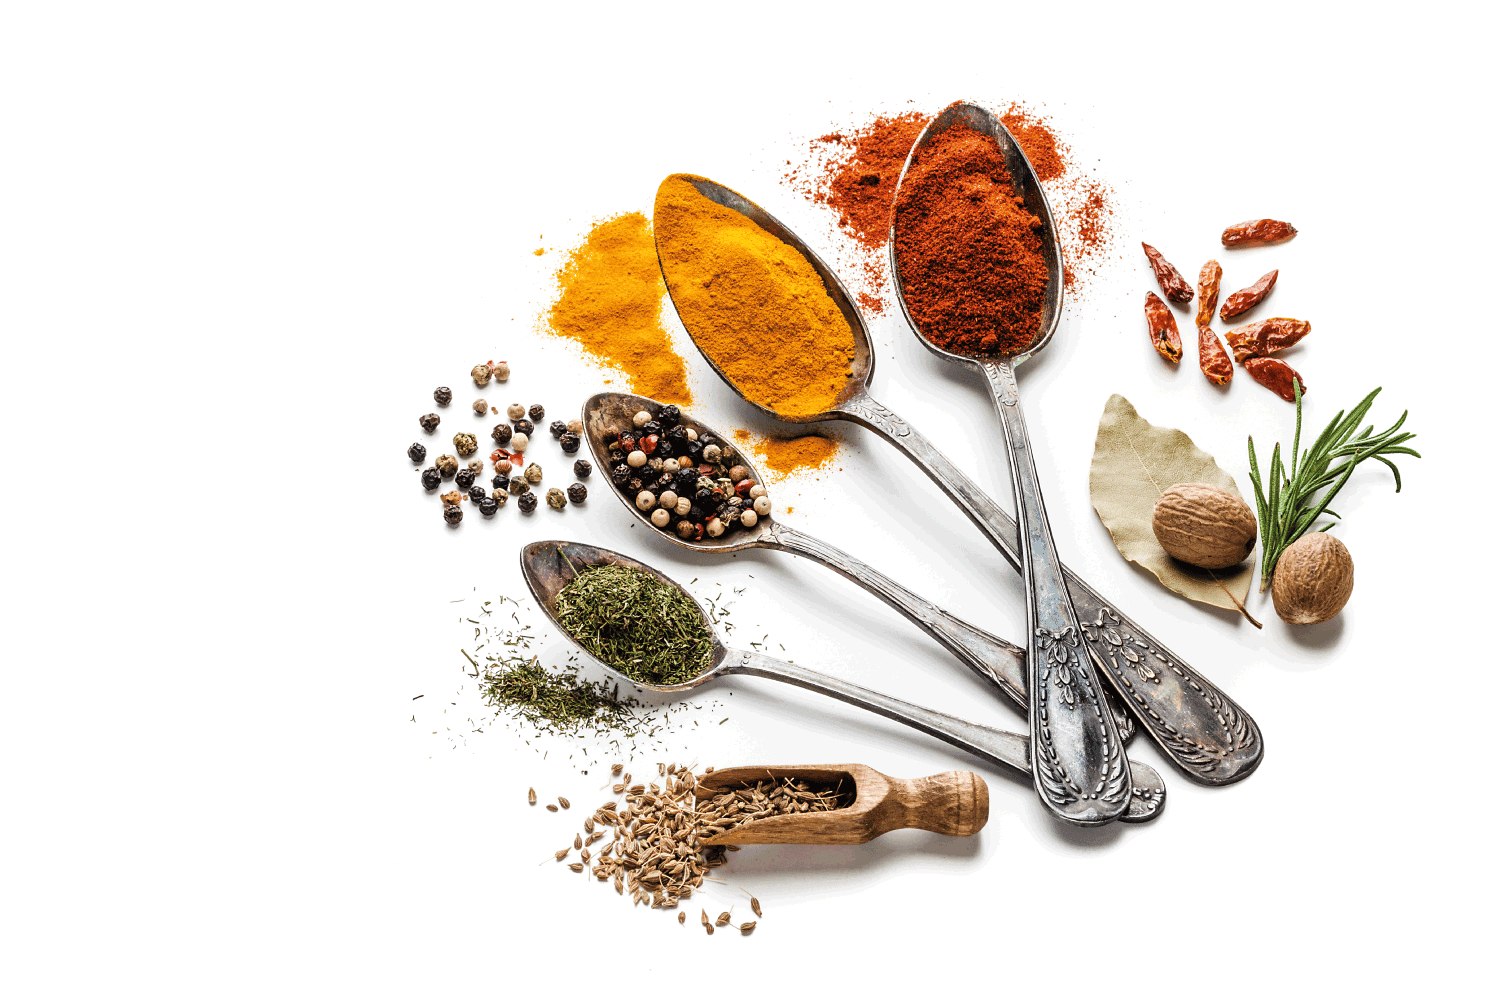 Top view of four old spoons with spices and herbs shot on white background